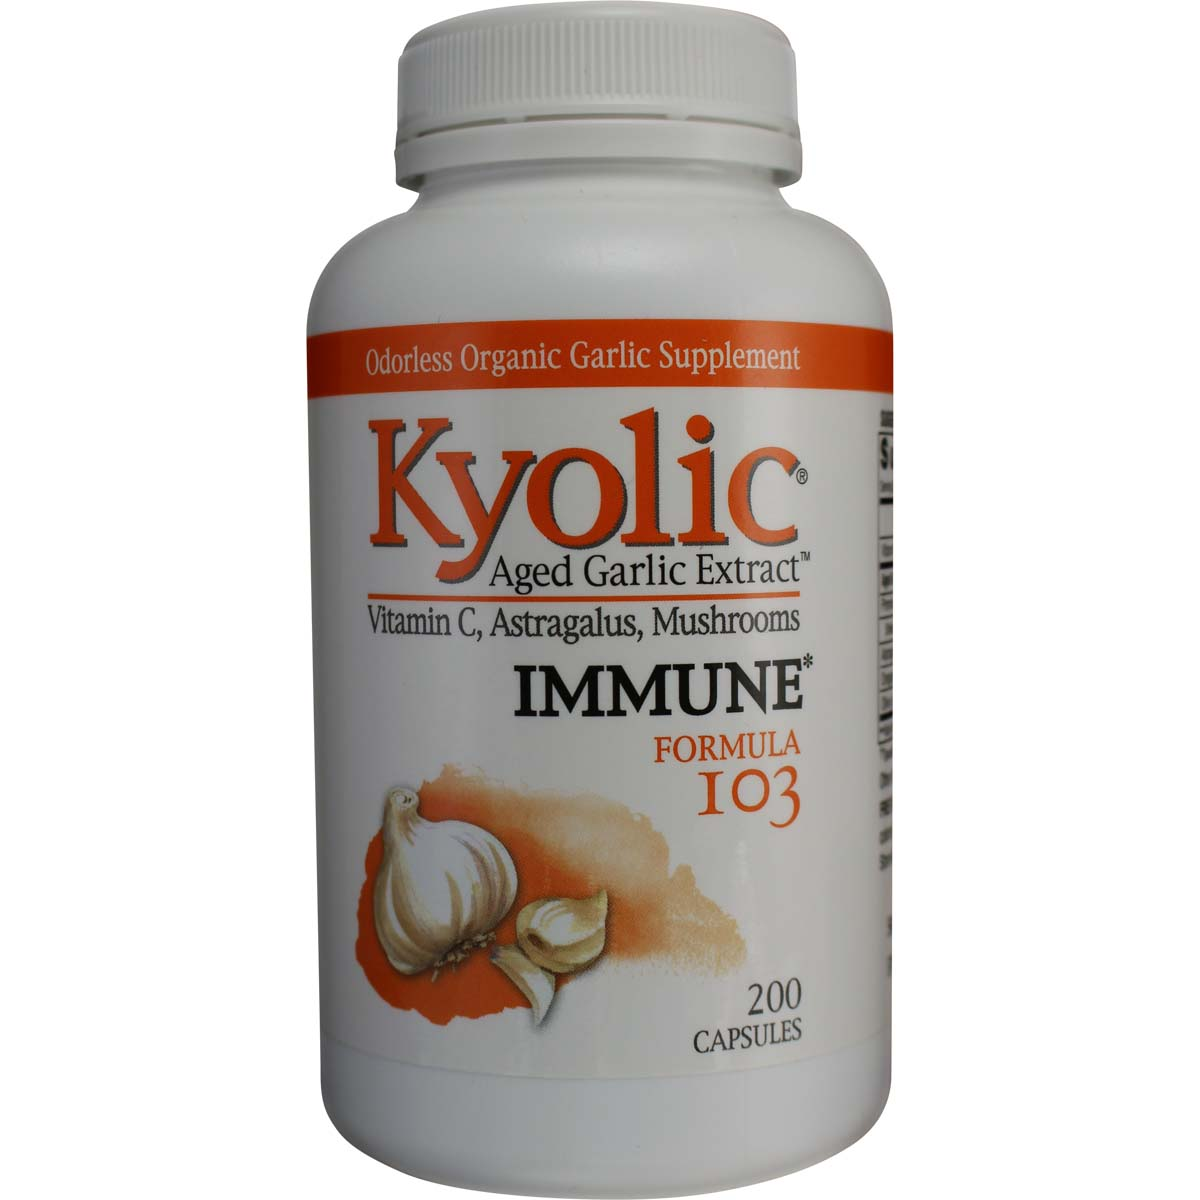 Kyolic Garlic Extract Vitamin C Astragalus Mushrooms